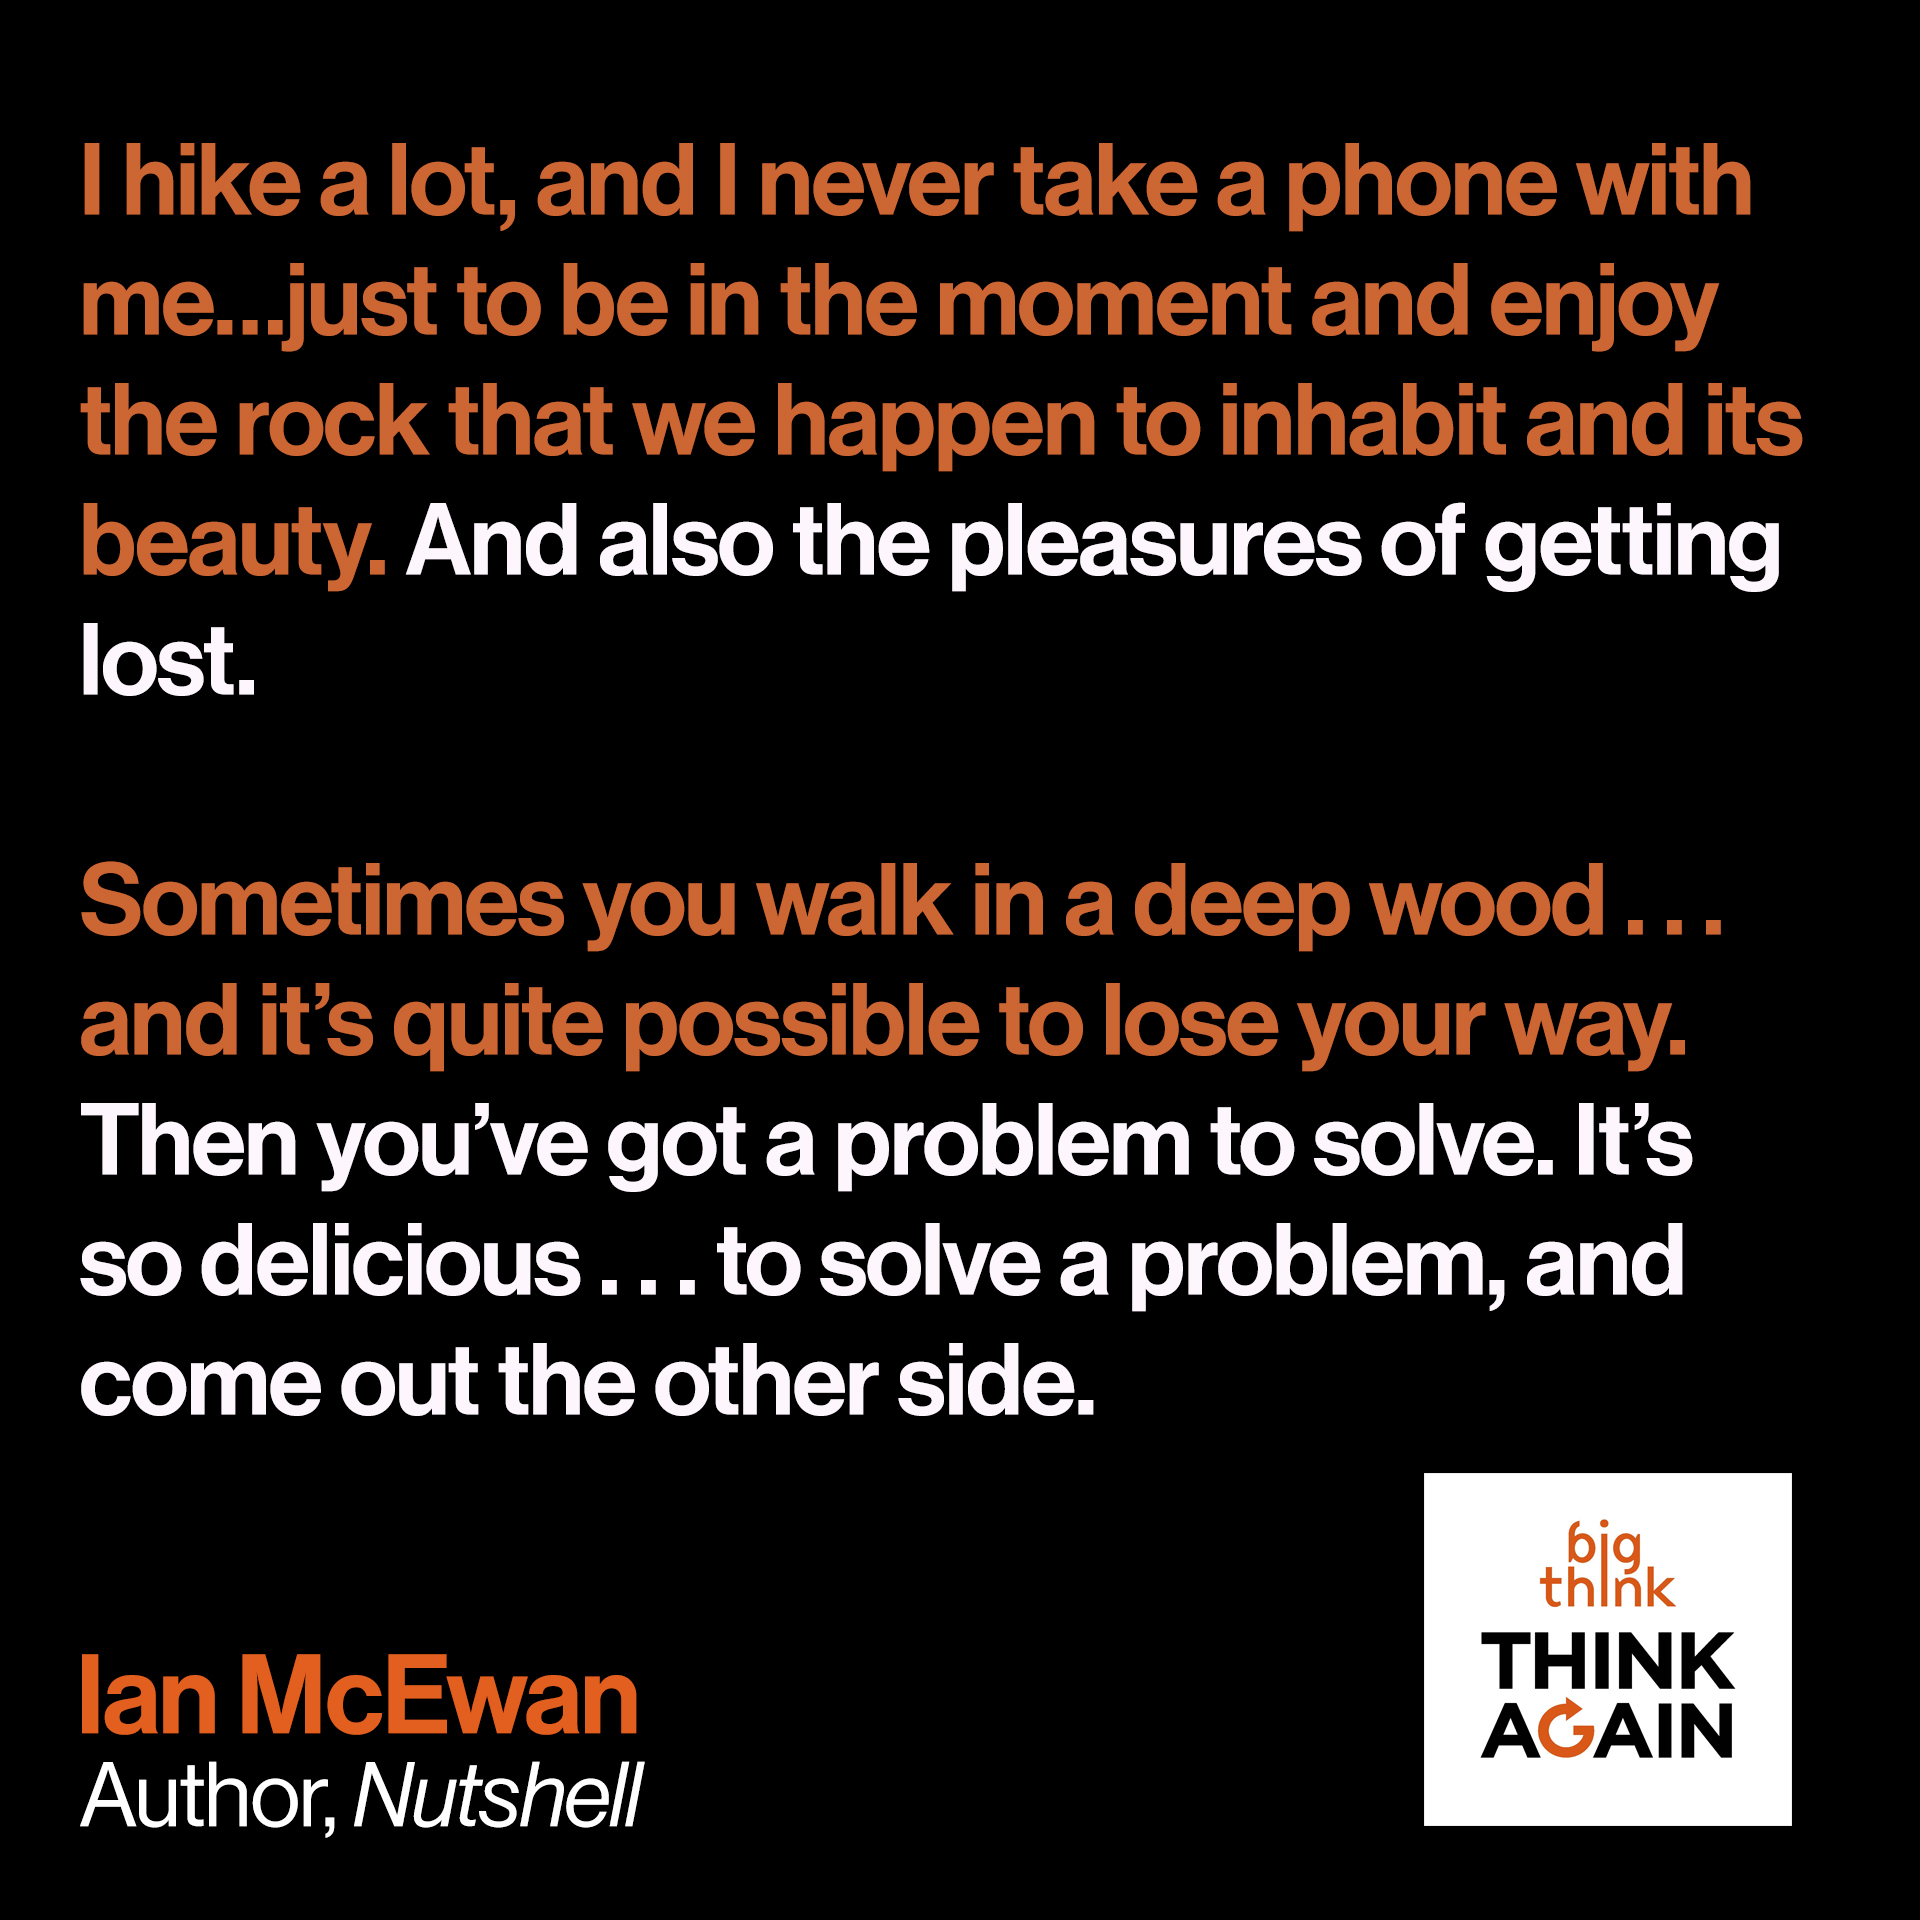 Ian McEwan Quote: I hike a lot, and I never take a phone with me…just to be in the moment and enjoy the rock that we happen to inhabit and its beauty.  And also the pleasures of getting lost. Sometimes you walk in a deep wood…and it's quite possible to lose your way.  Then you've got a problem to solve. It's so delicious! To solve a problem, and come out the other side.